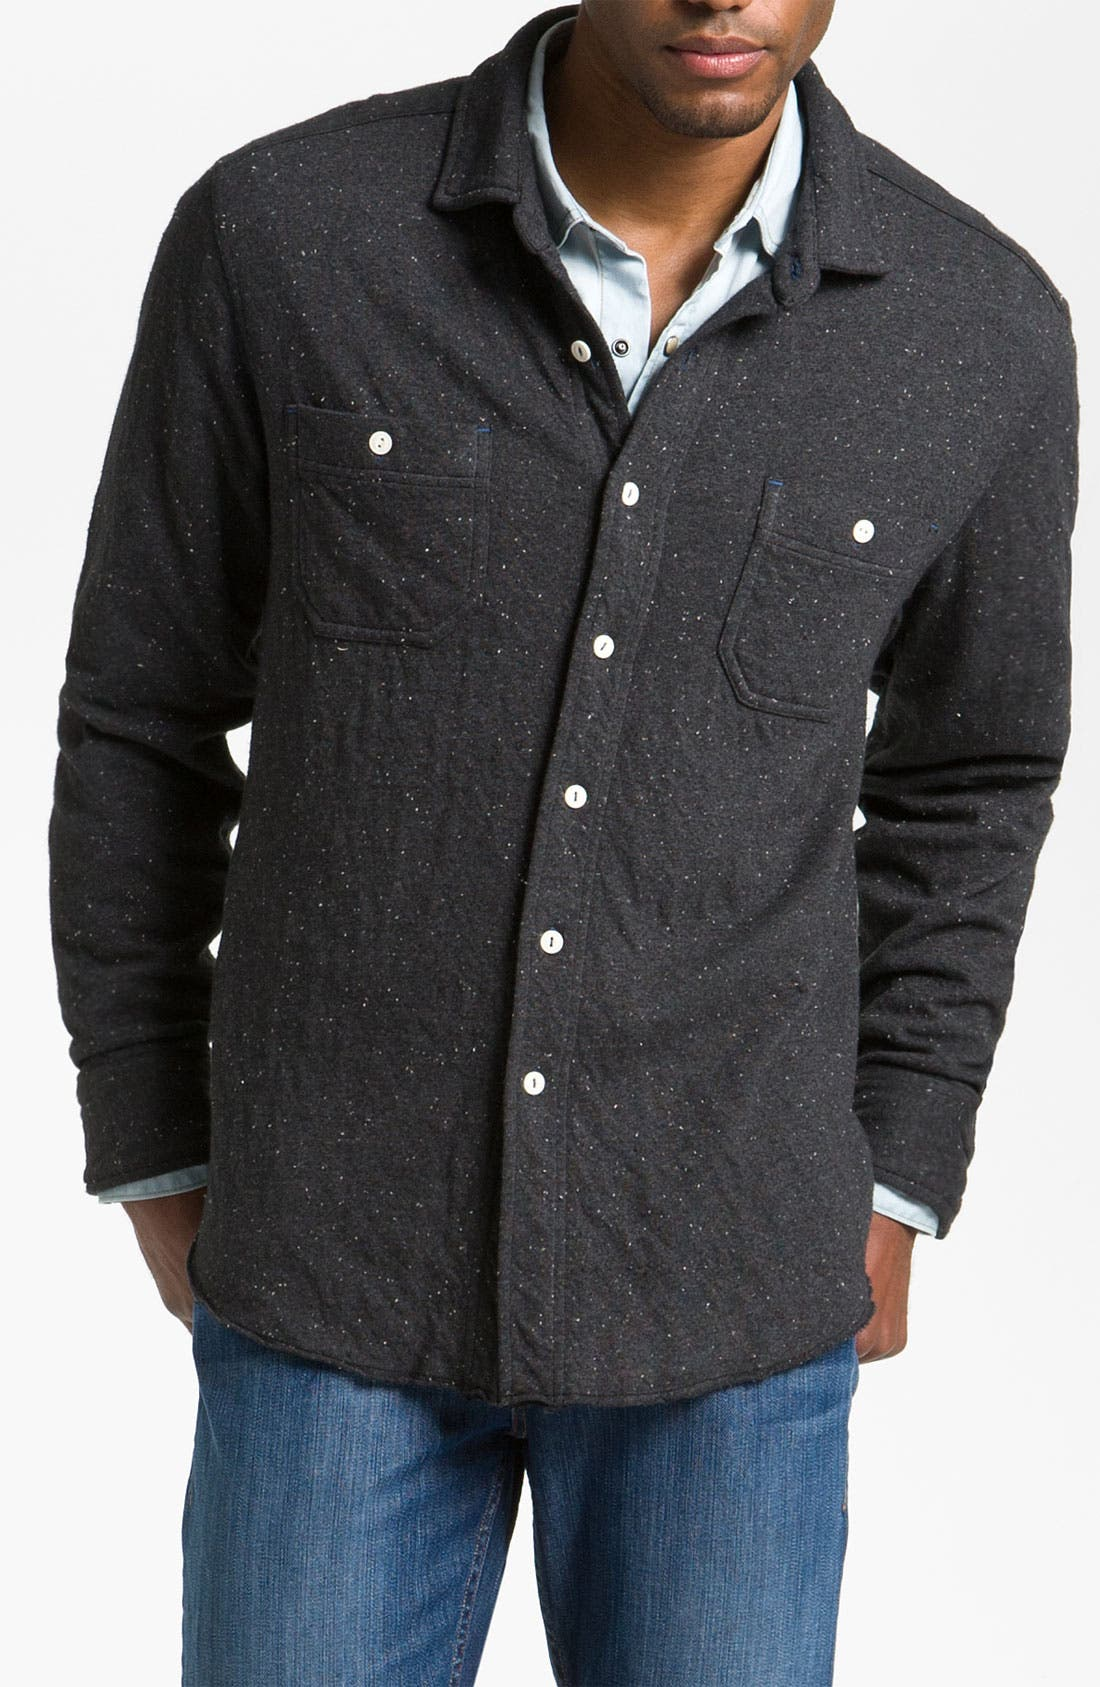 Alternate Image 1 Selected - Tommy Bahama Denim Double Knit Jacket